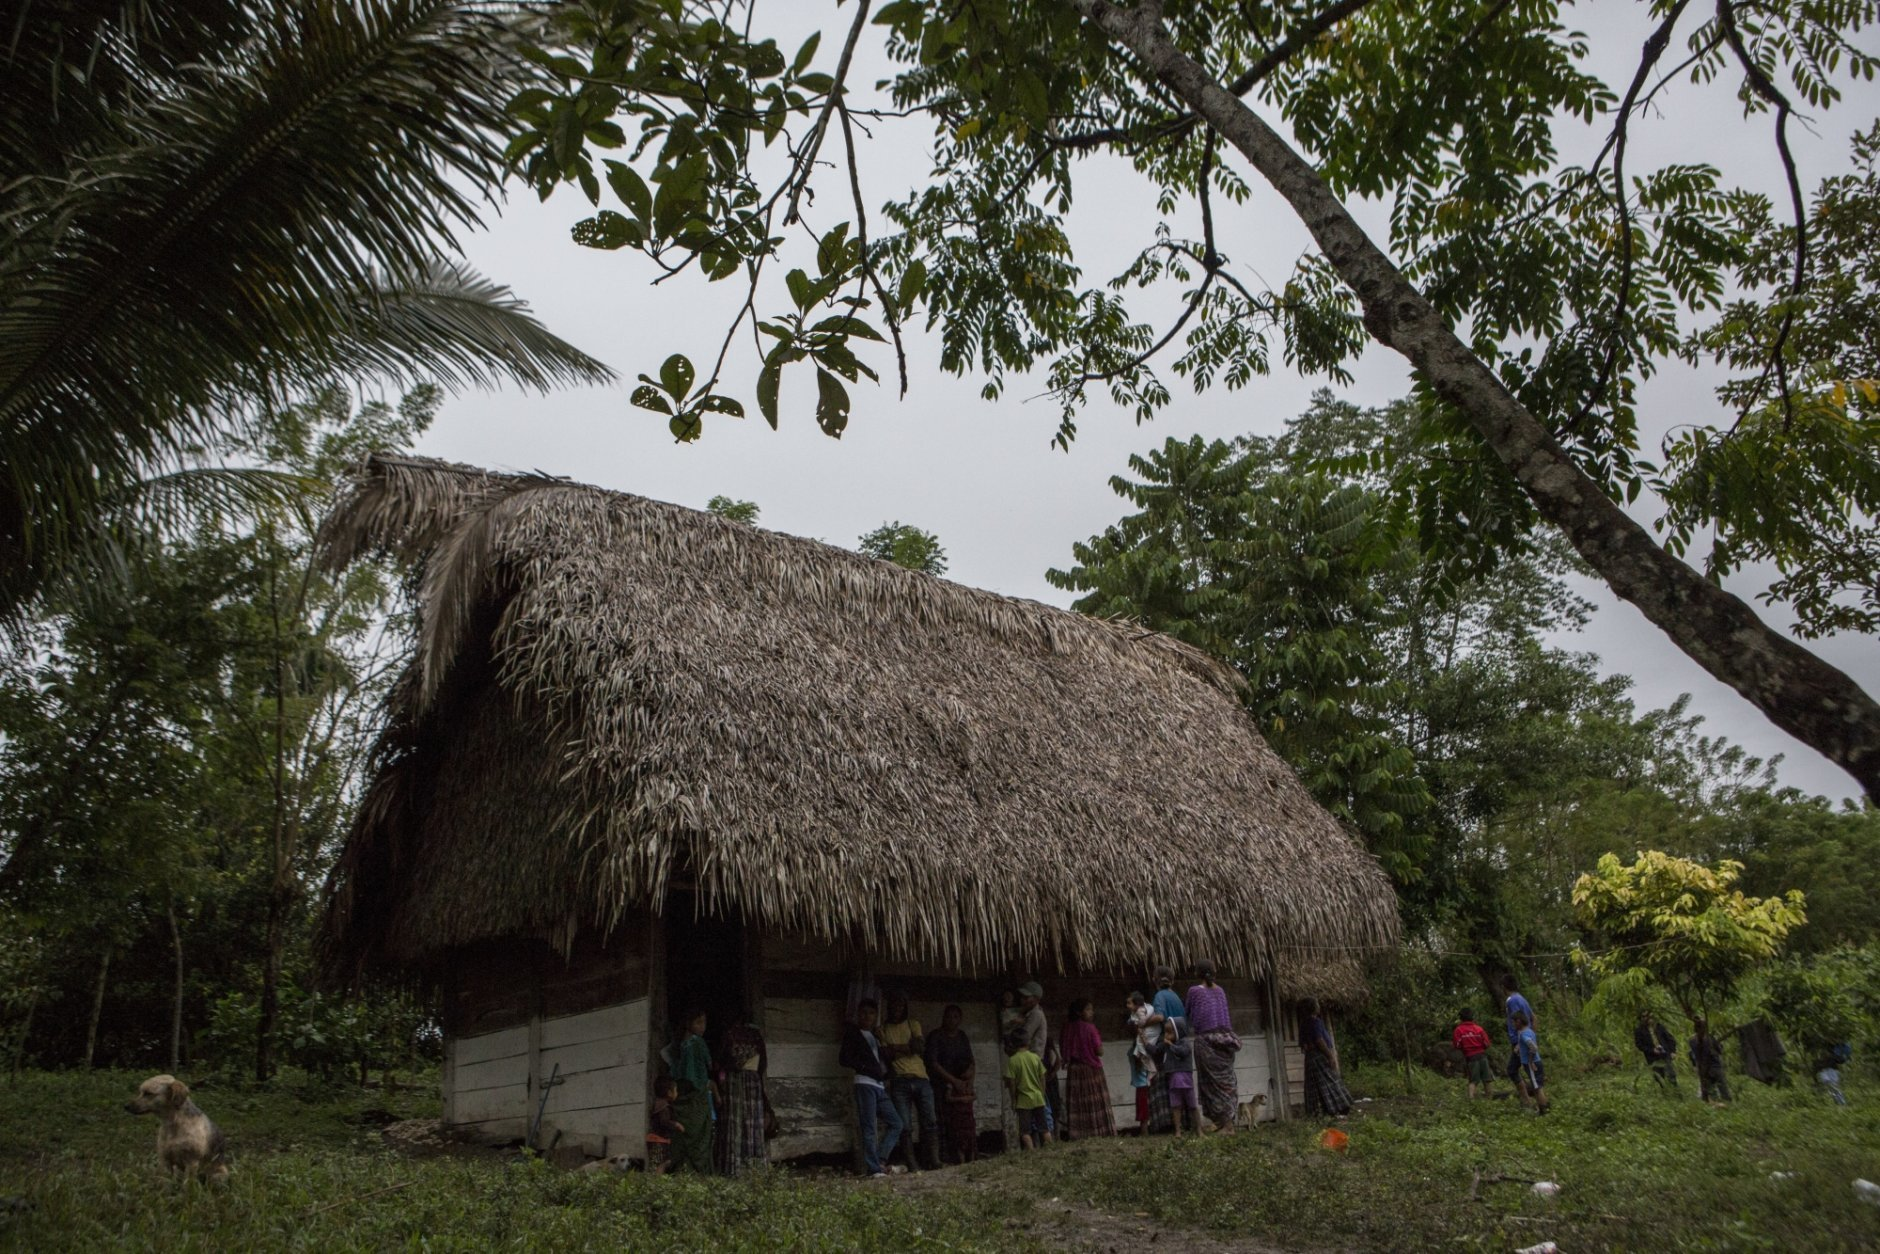 Neighbors gather around Claudia Maquin's house in Raxruha, Guatemala, on Saturday, Dec. 15, 2018. Her daughter, 7-year-old Jakelin Amei Rosmery Caal, used to sleep here with her parents and three siblings. The small wooden house has a straw roof, dirt floors, a few bedsheets and a fire pit for cooking. (AP Photo/Oliver de Ros)